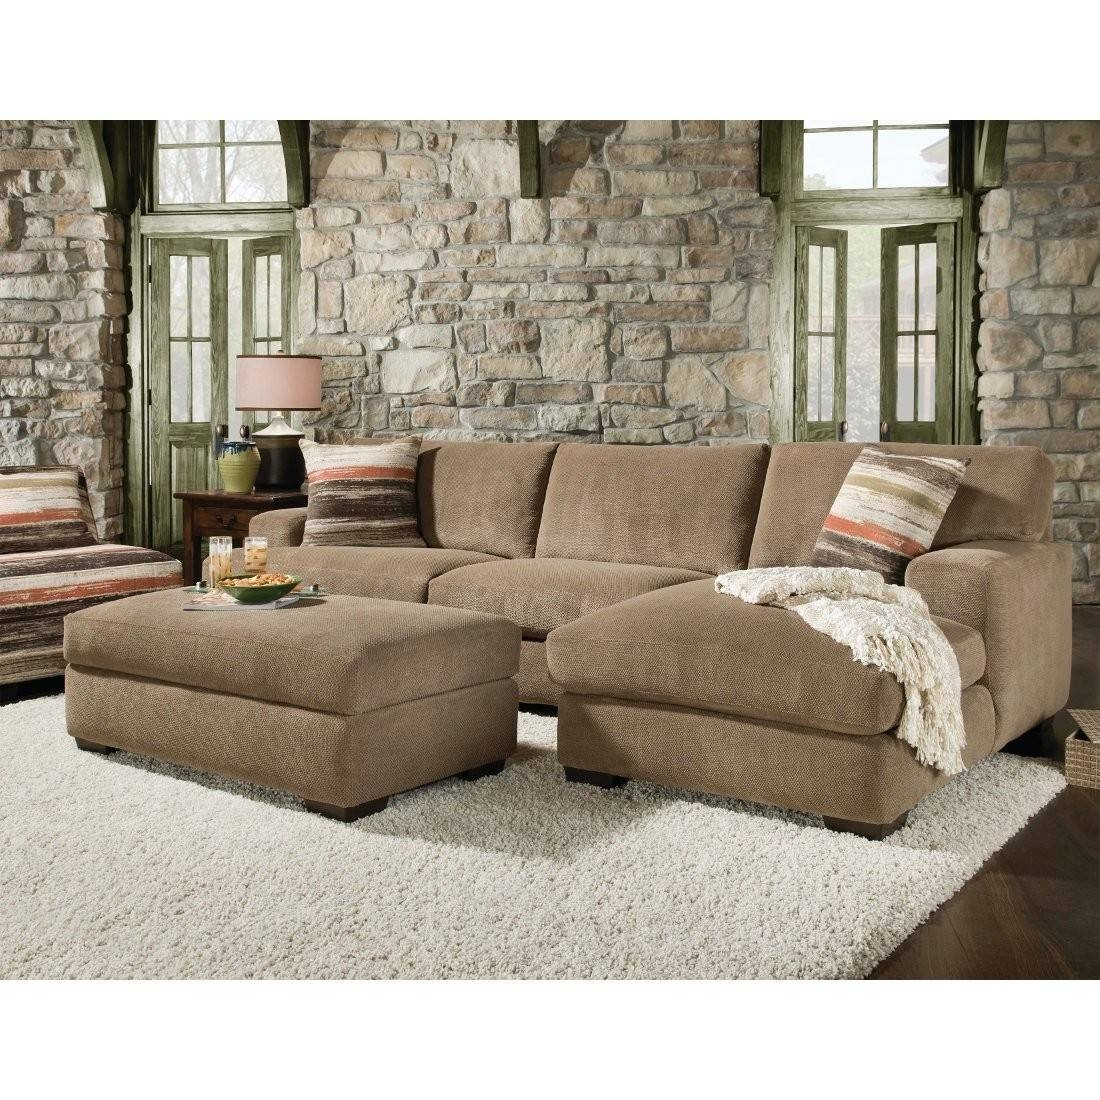 Sectional Sofa With Chaise And Ottoman - Cleanupflorida intended for Backless Chaise Sofa (Image 19 of 30)